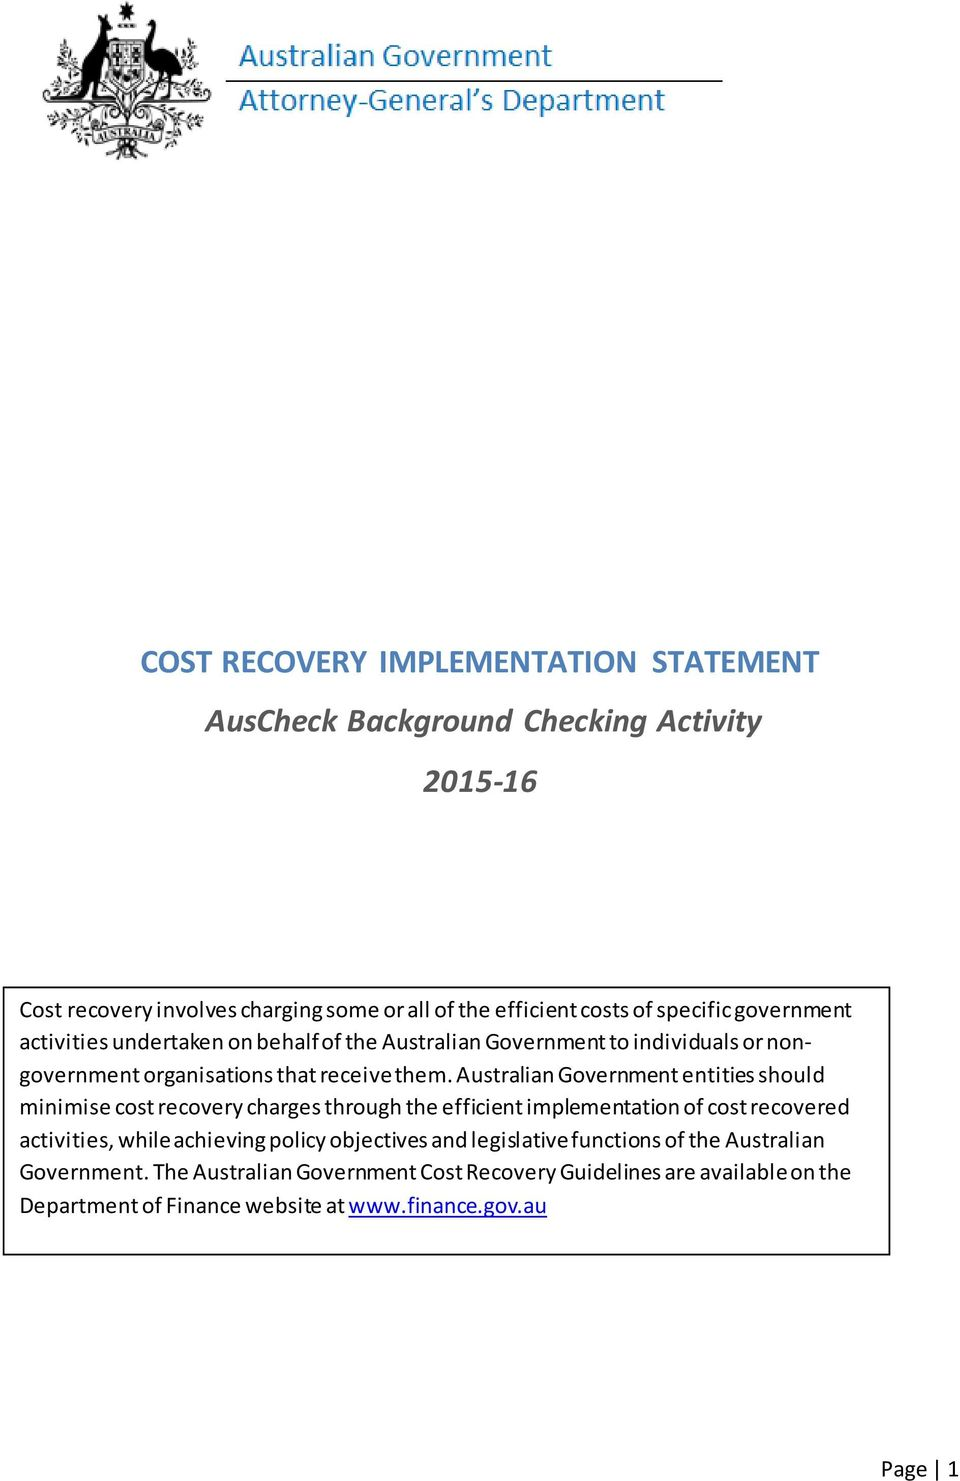 Australian Government entities should minimise cost recovery charges through the efficient implementation of cost recovered activities, while achieving policy